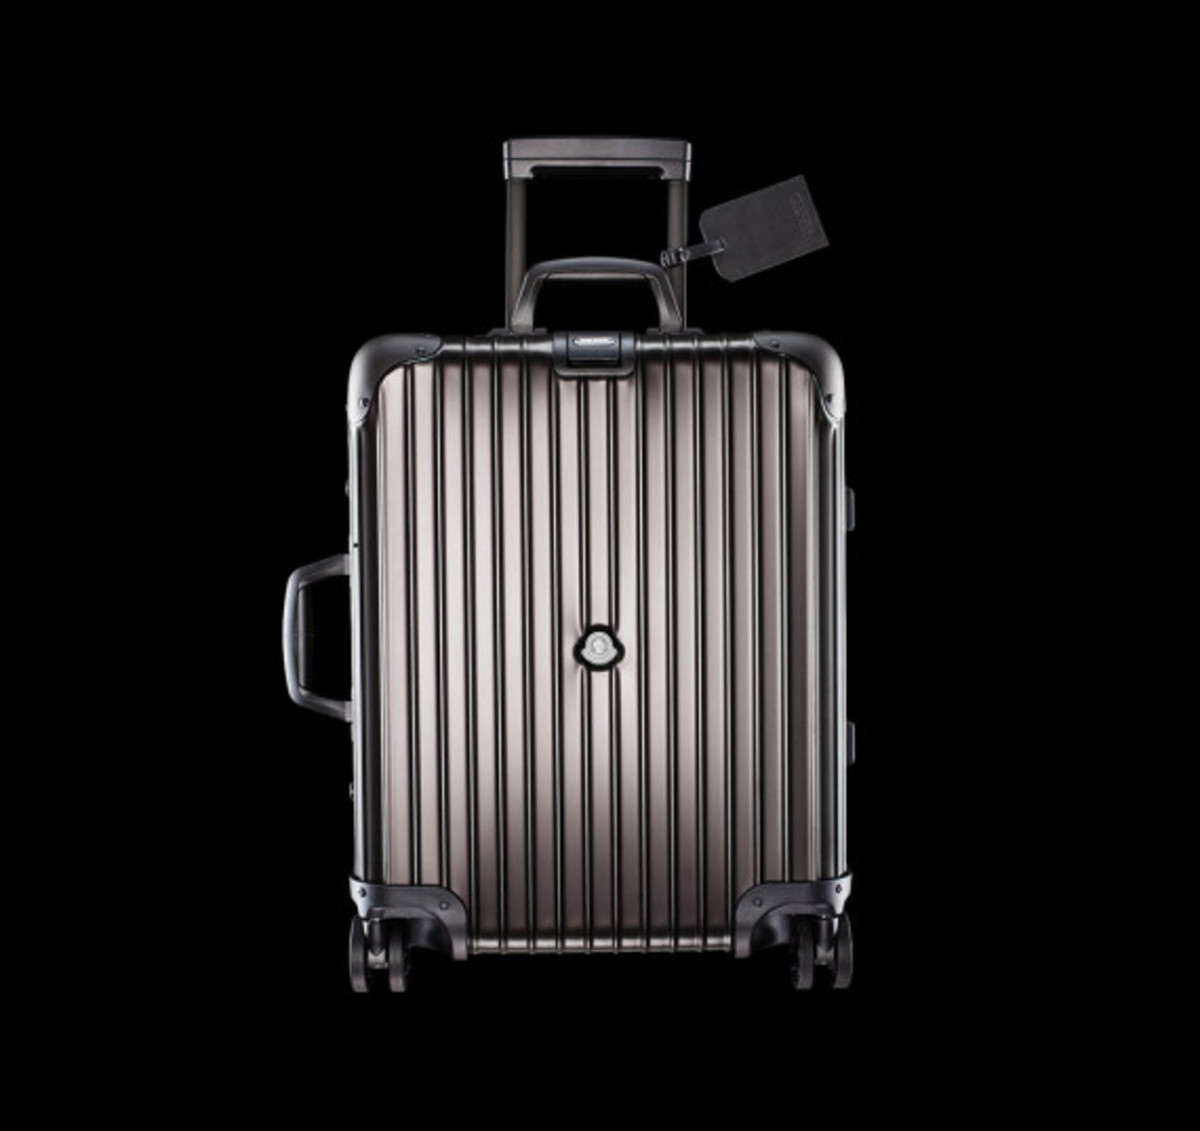 rimowa-and-moncler-luggage-collection-02